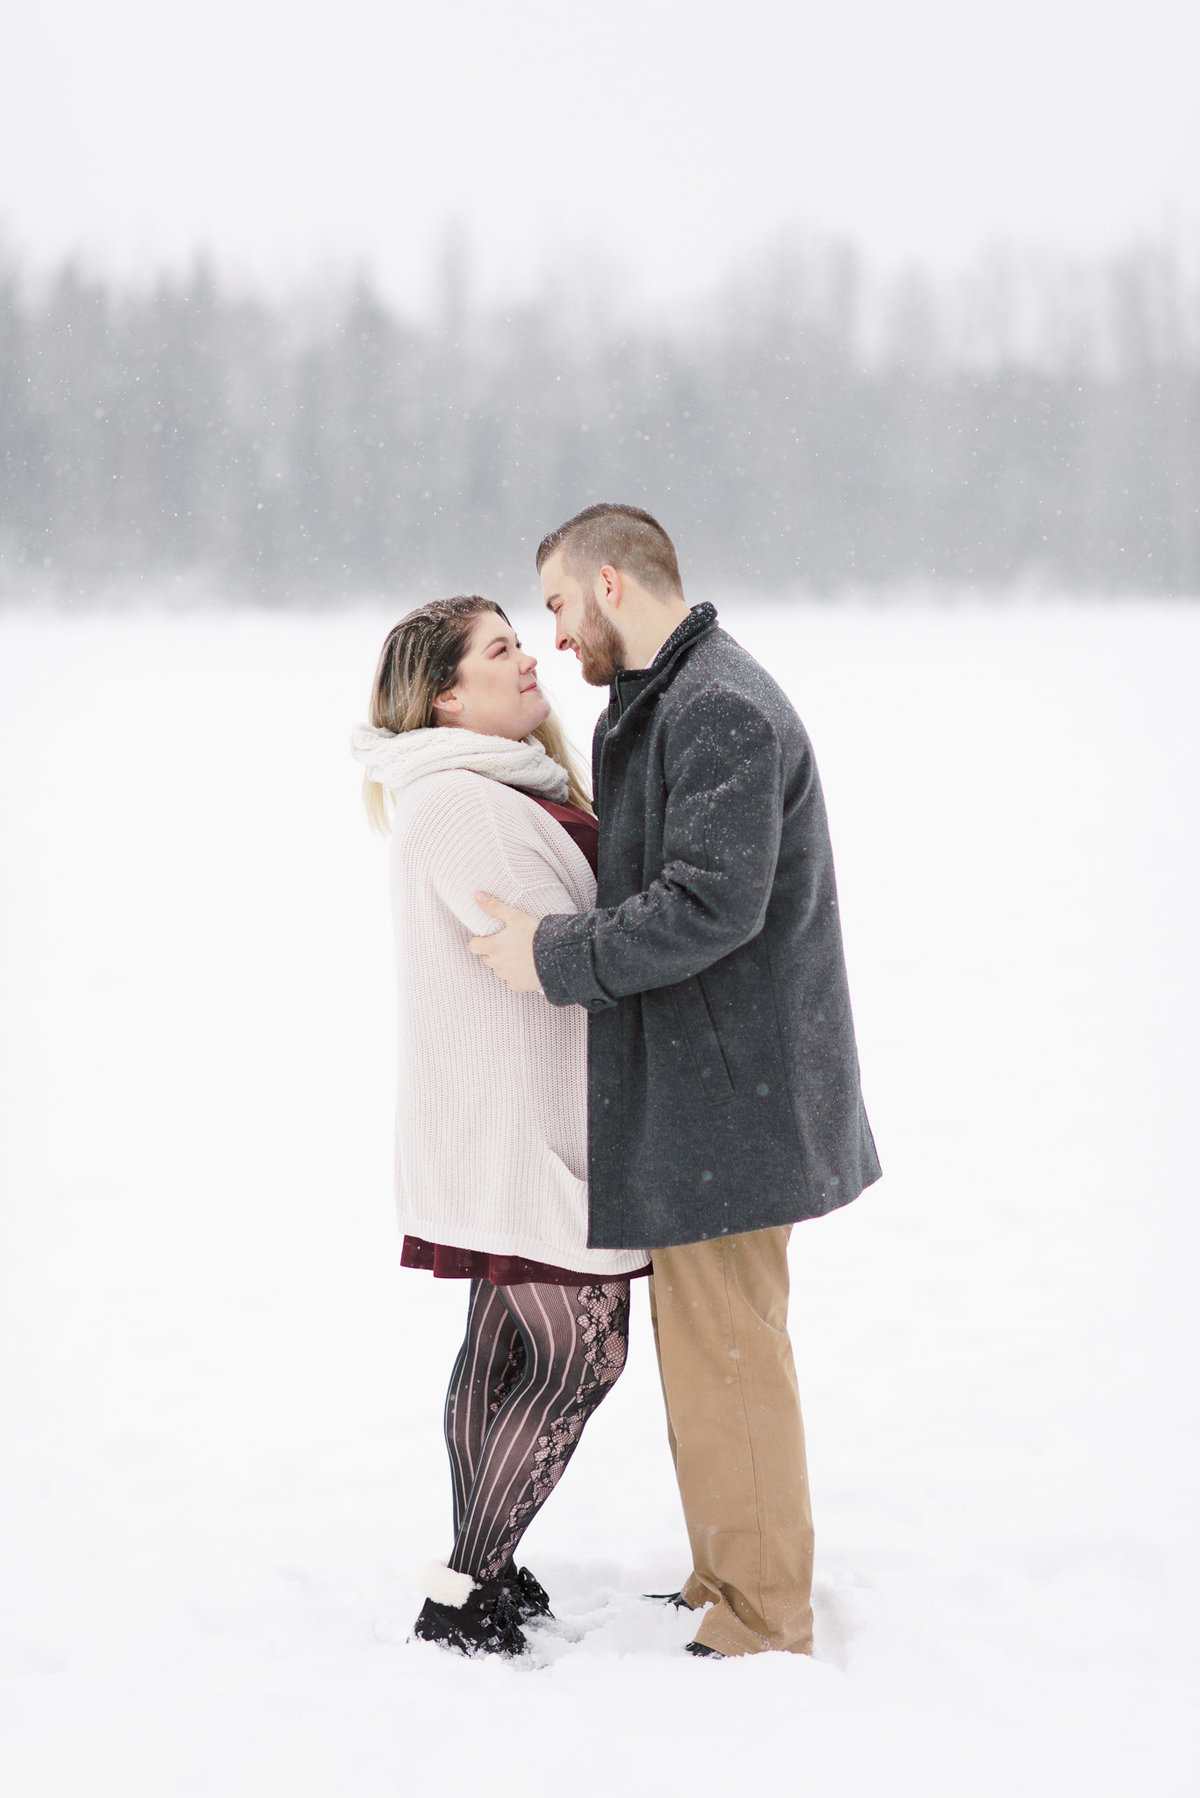 Alaska Snow Winter Engagement Photographer -6